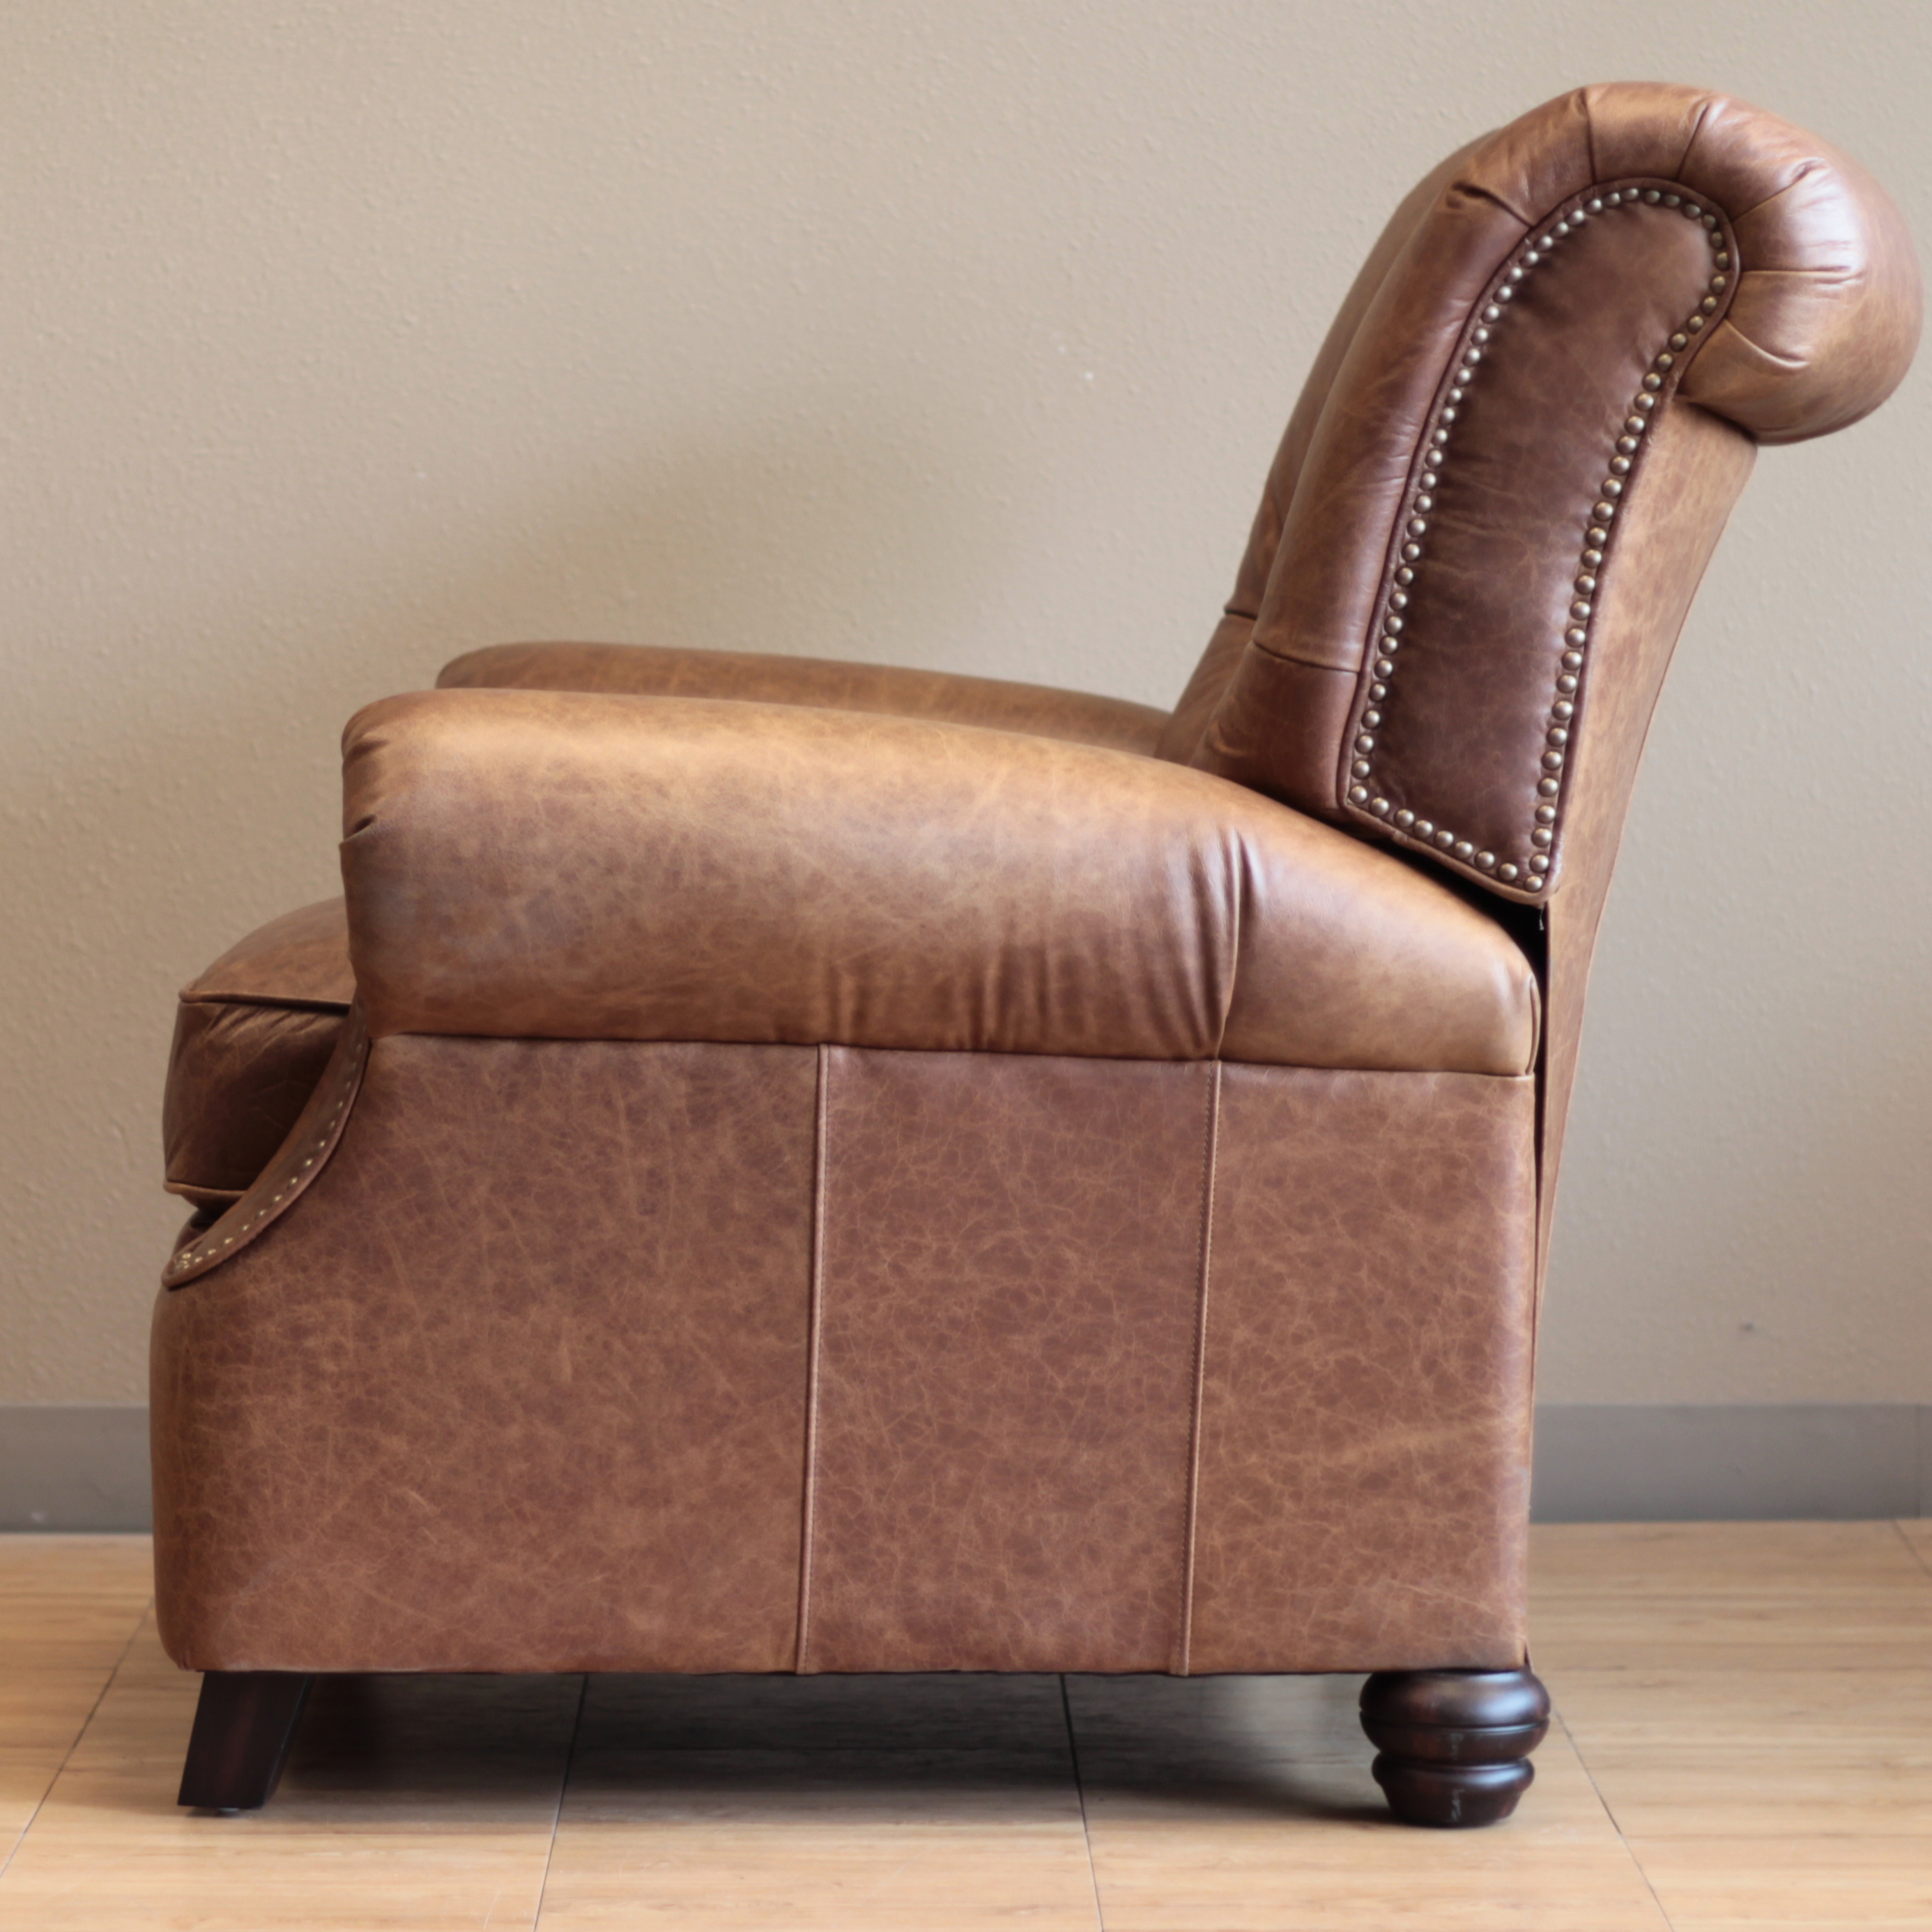 Barcalounger Phoenix Ii Recliner Chaps Saddle Leather Chair